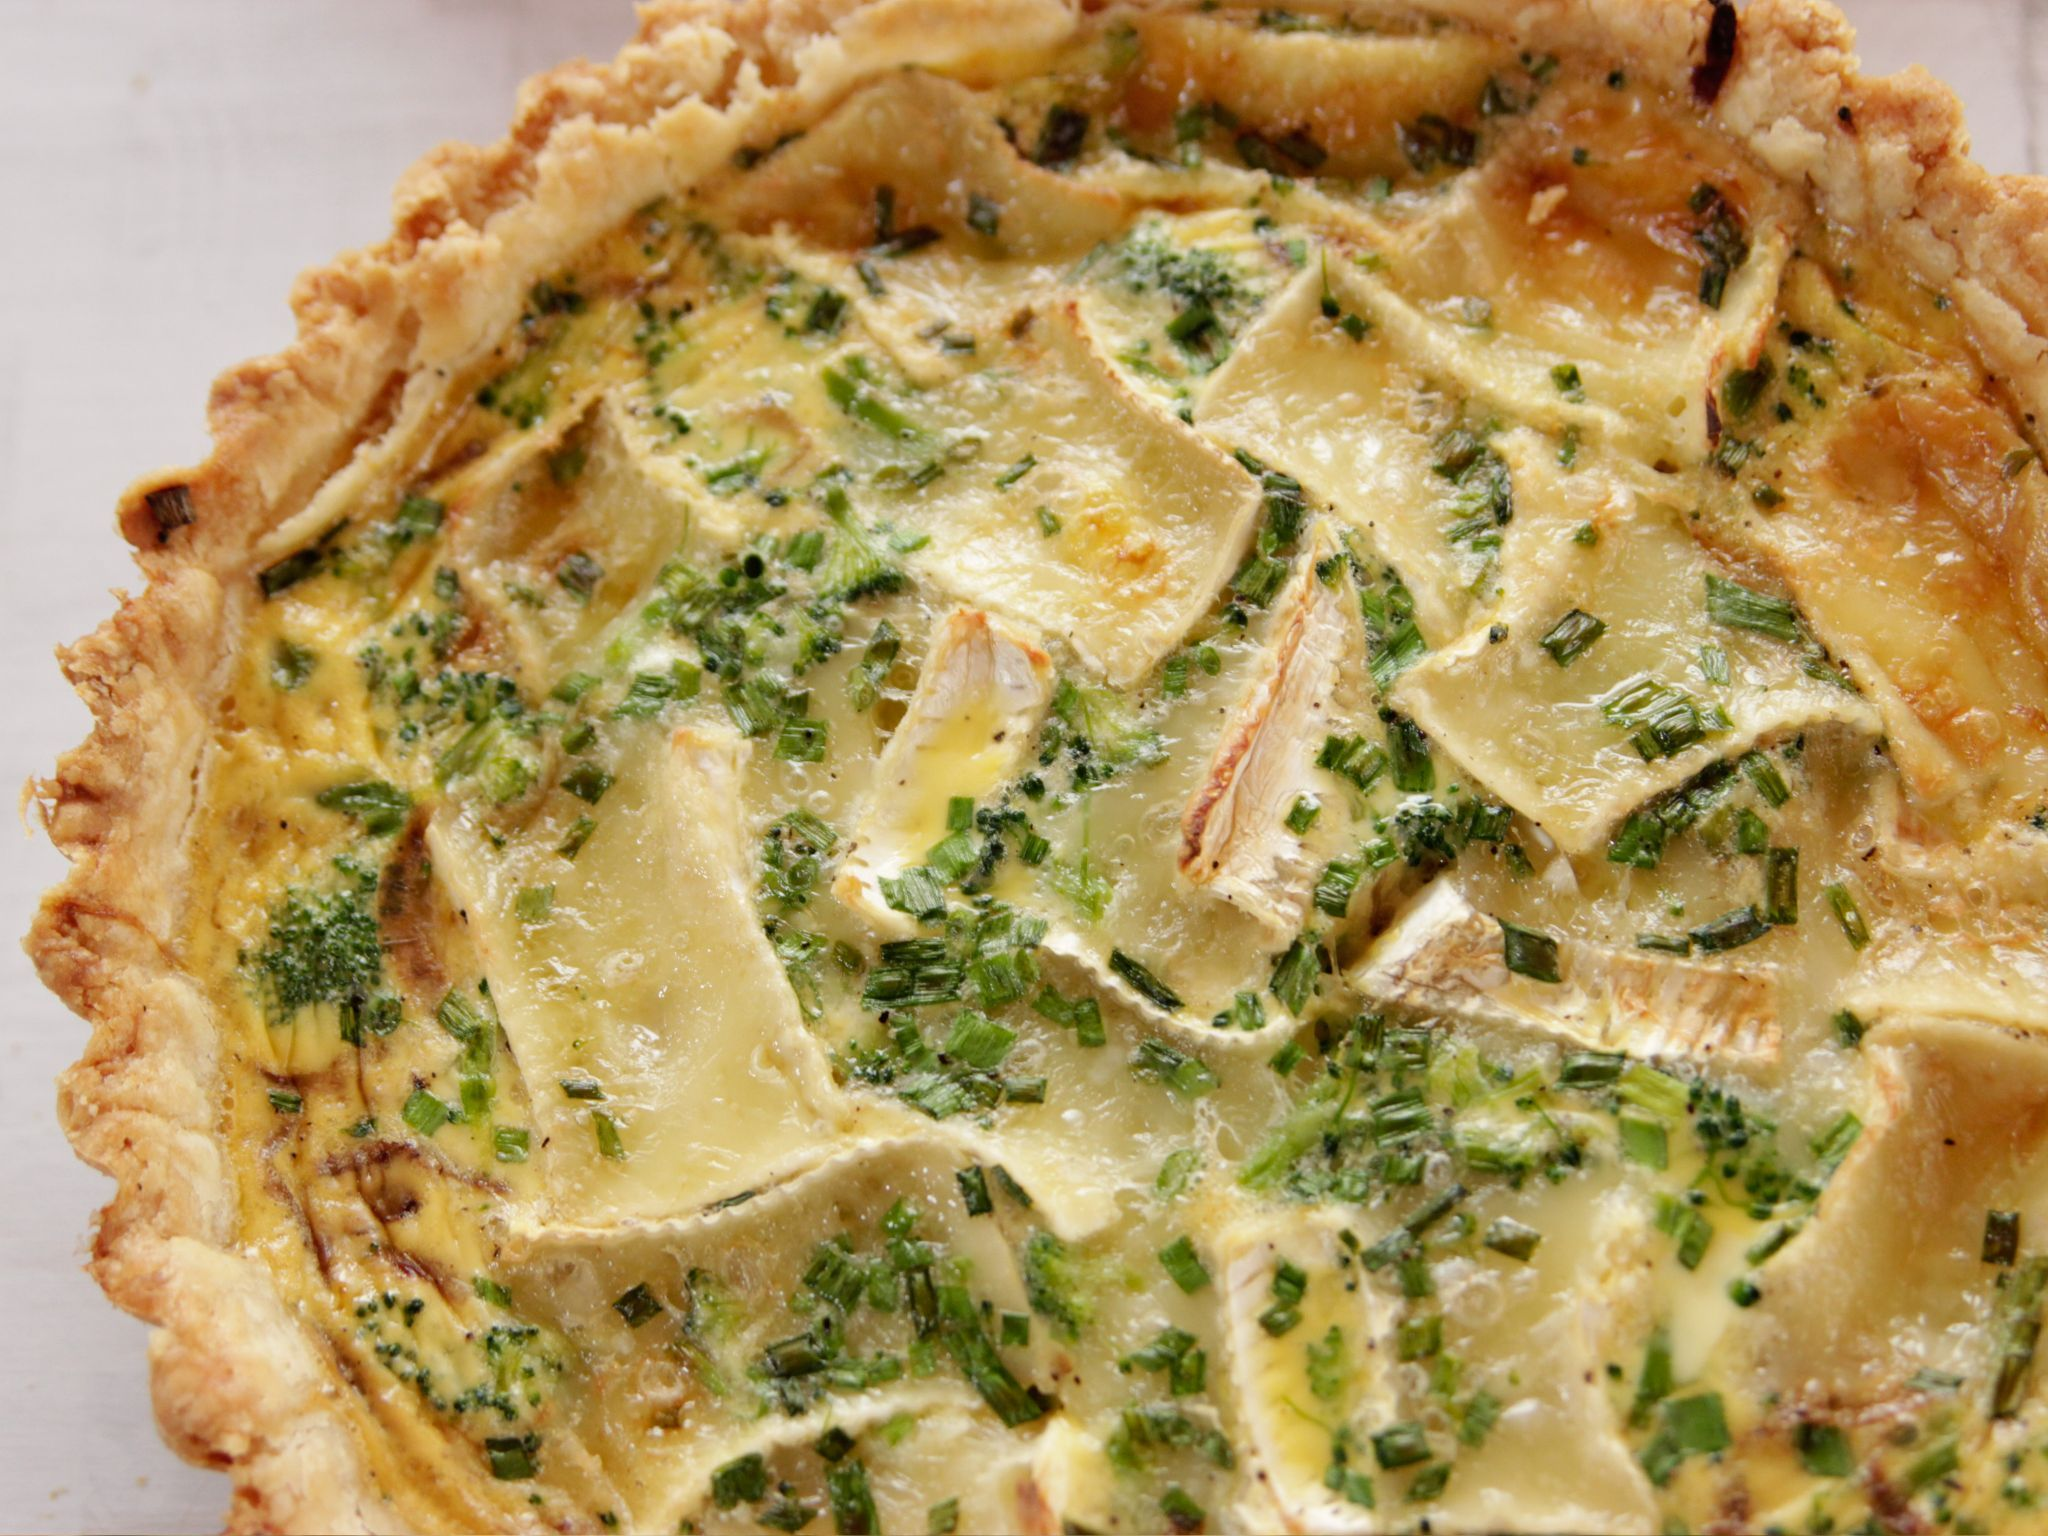 Brie and broccoli quiche recipe quiche recipes quiches and brie brie and broccoli quiche forumfinder